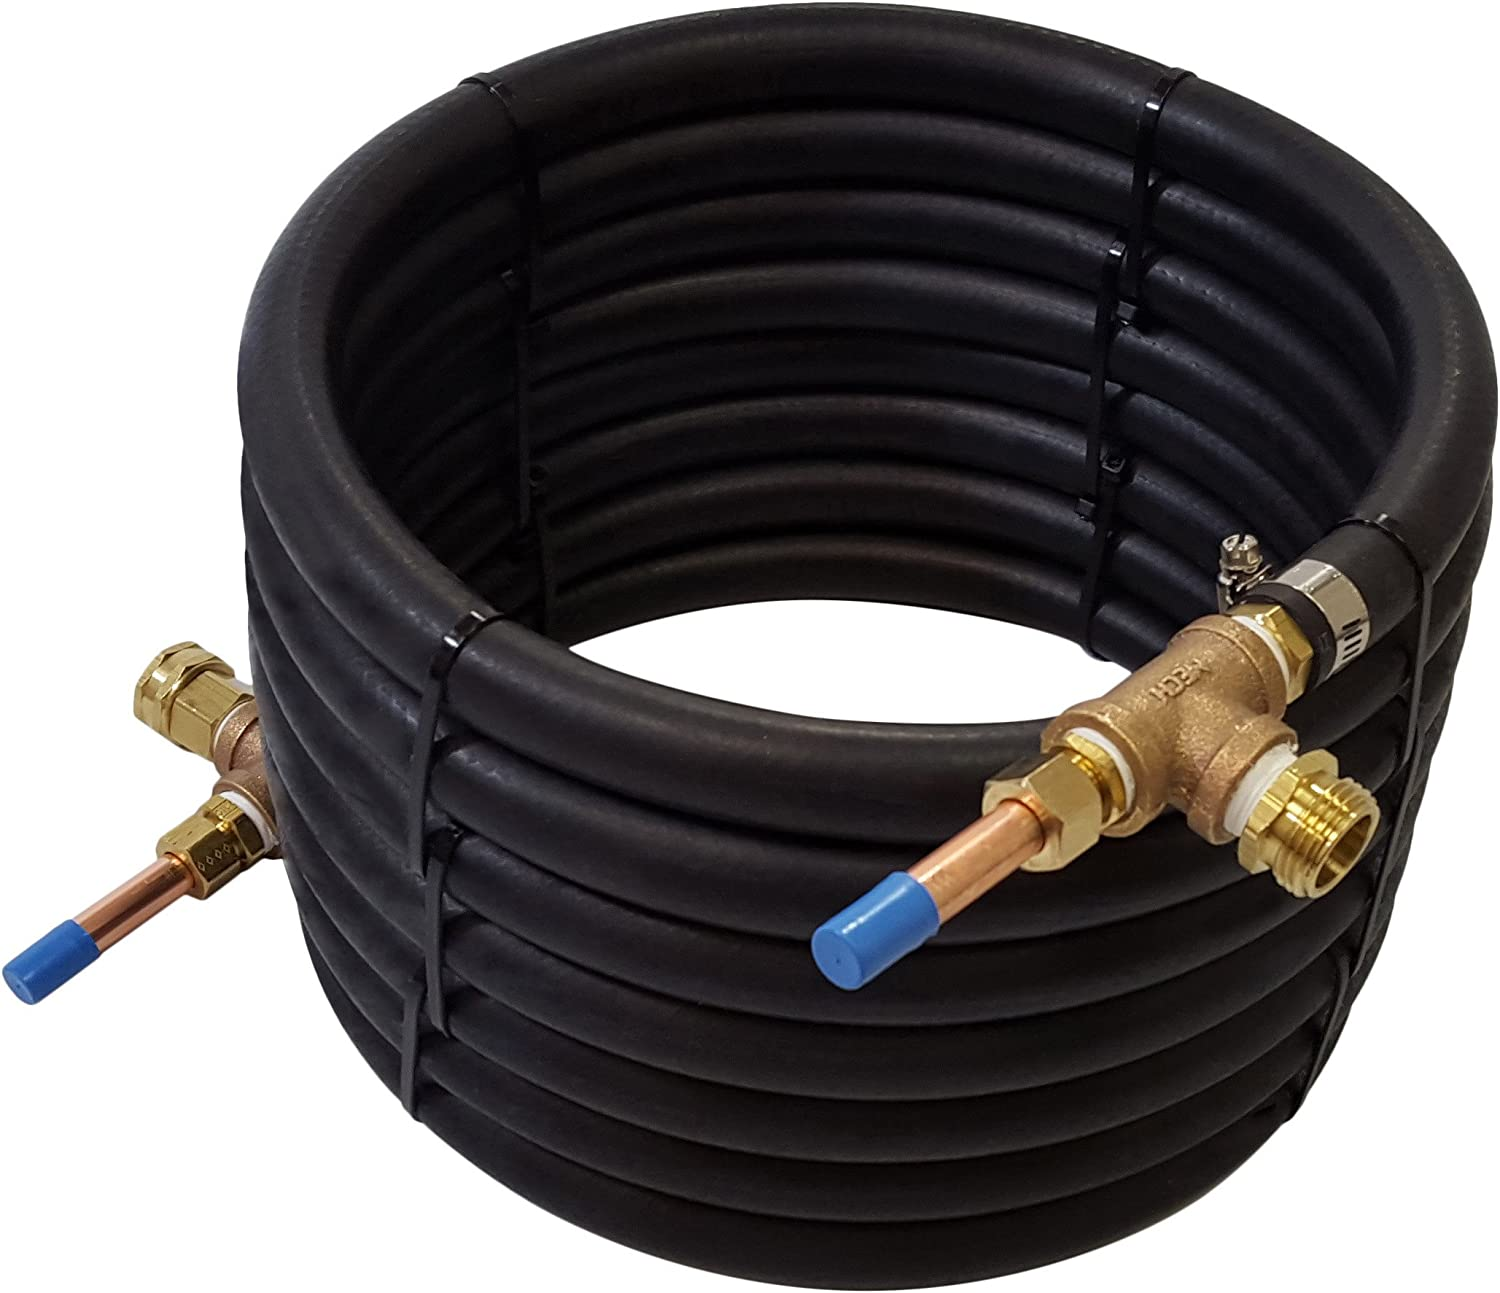 "NY Brew Supply Deluxe Counterflow Wort Chiller with Copper Tubing, 1/2"", Bronze"